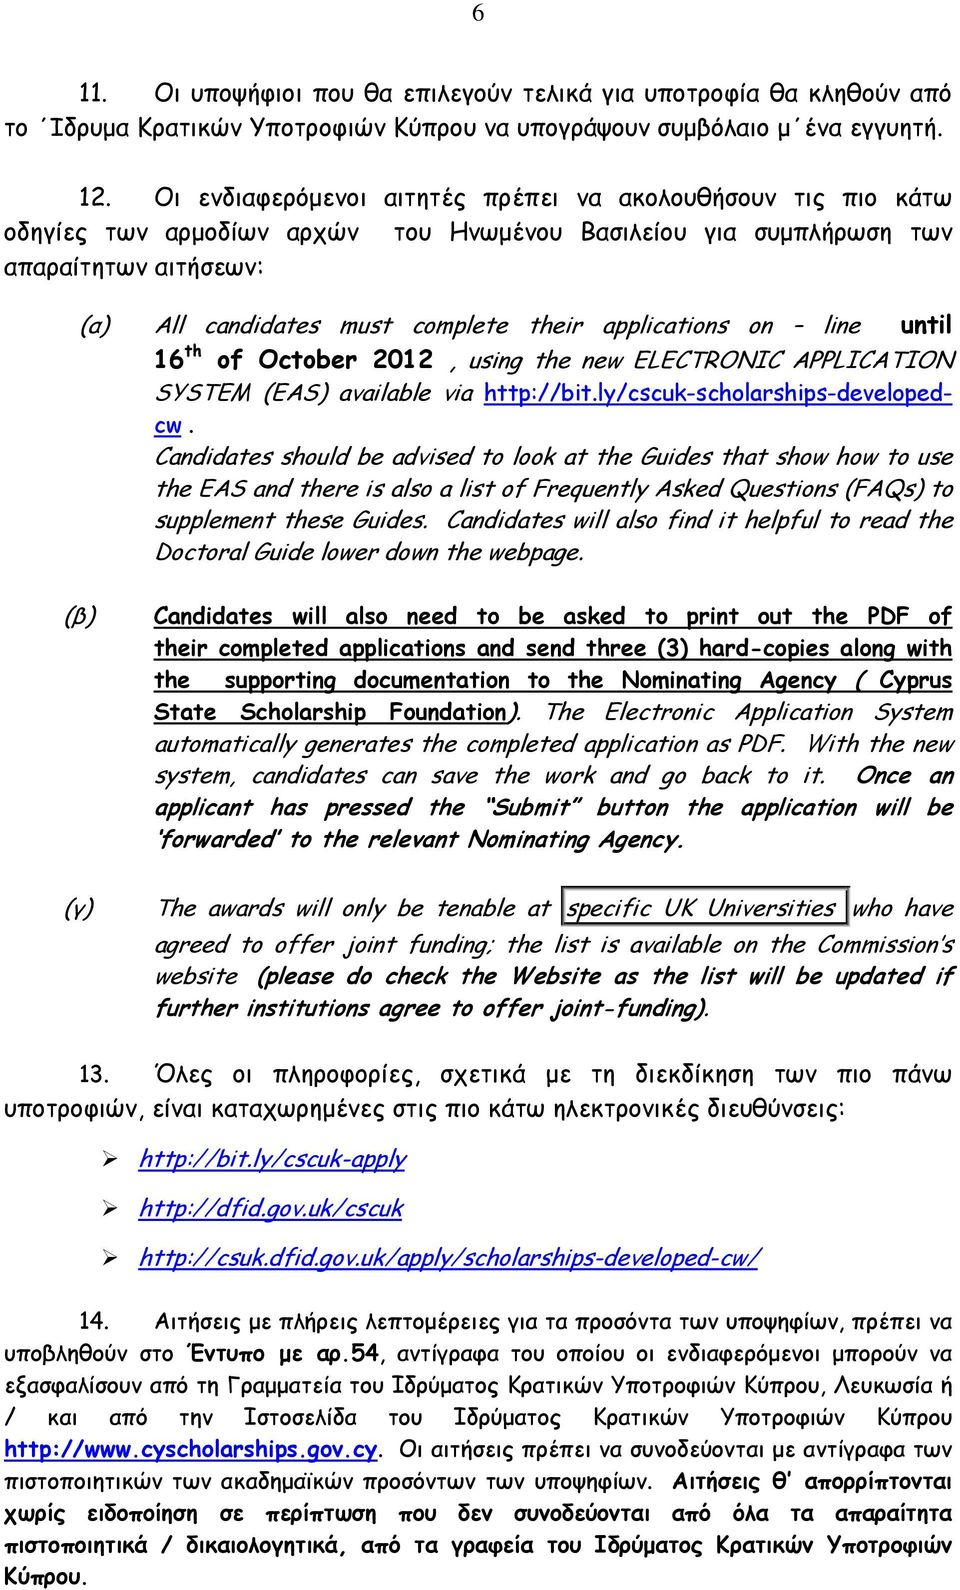 applications on line until 16 th of October 2012, using the new ELECTRONIC APPLICATION SYSTEM (EAS) available via http://bit.ly/cscuk-scholarships-developedcw.